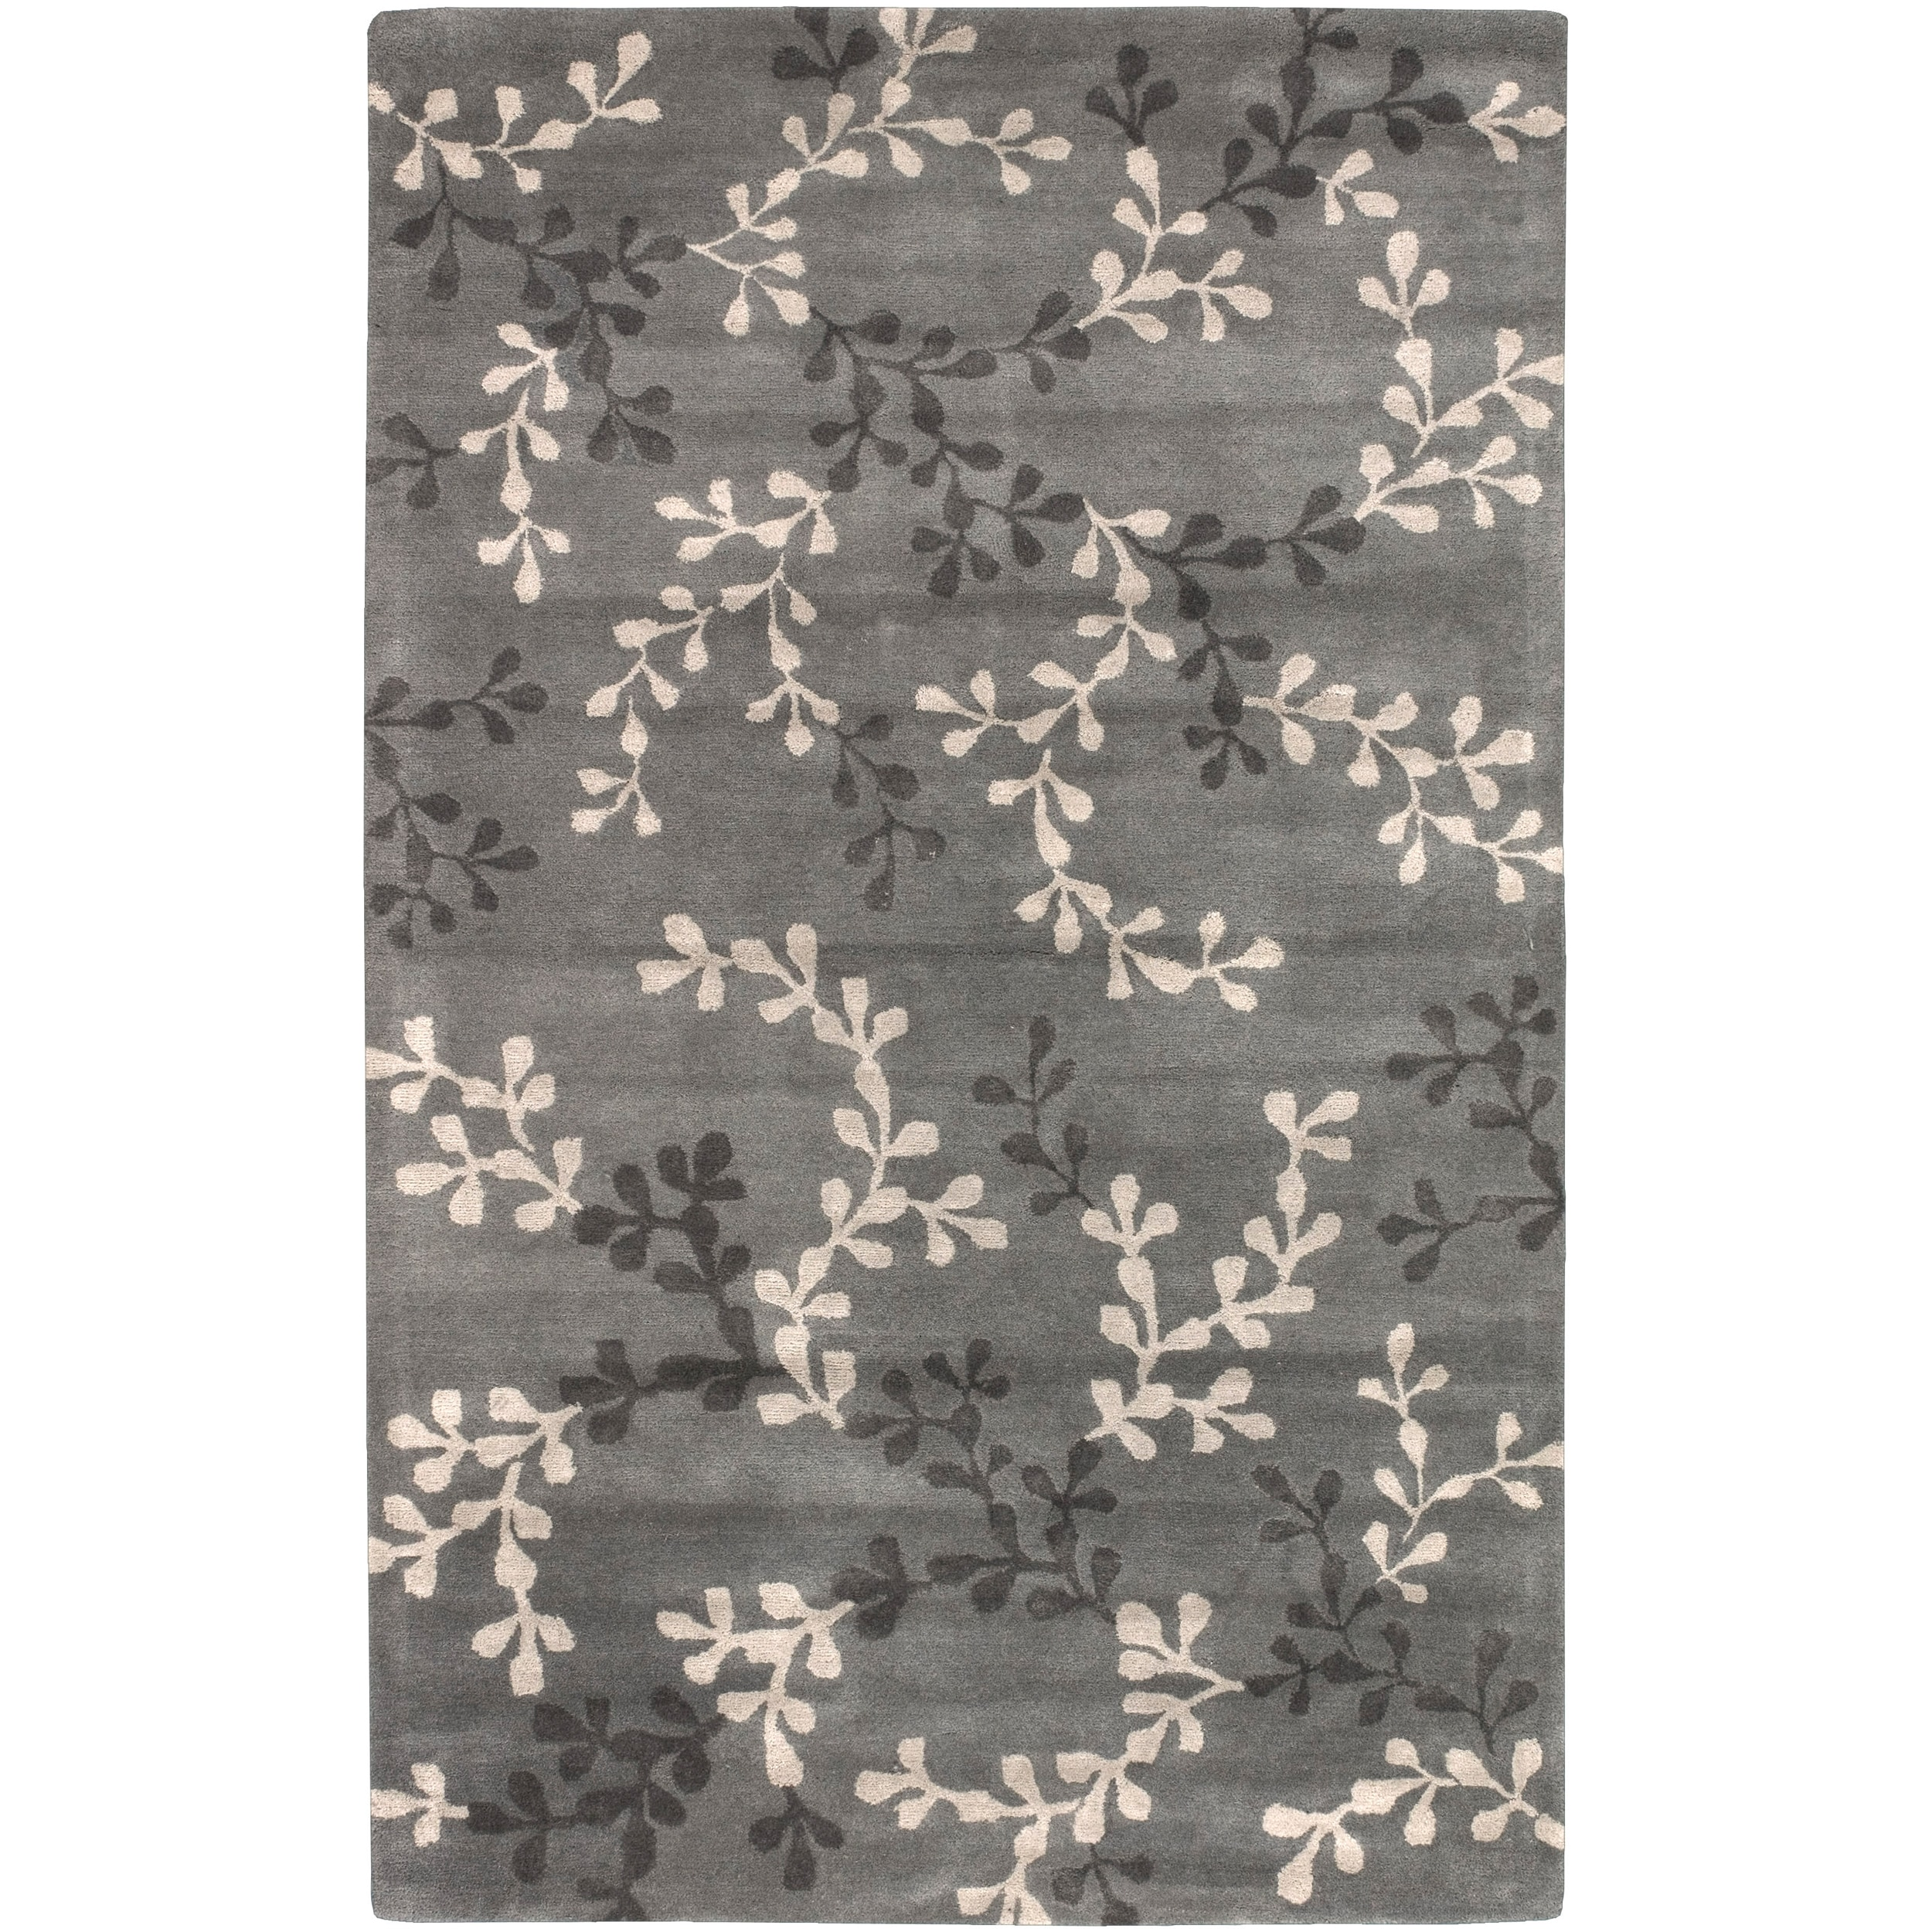 Hand-tufted Annamite New Zealand Wool Rug (9' x 13')